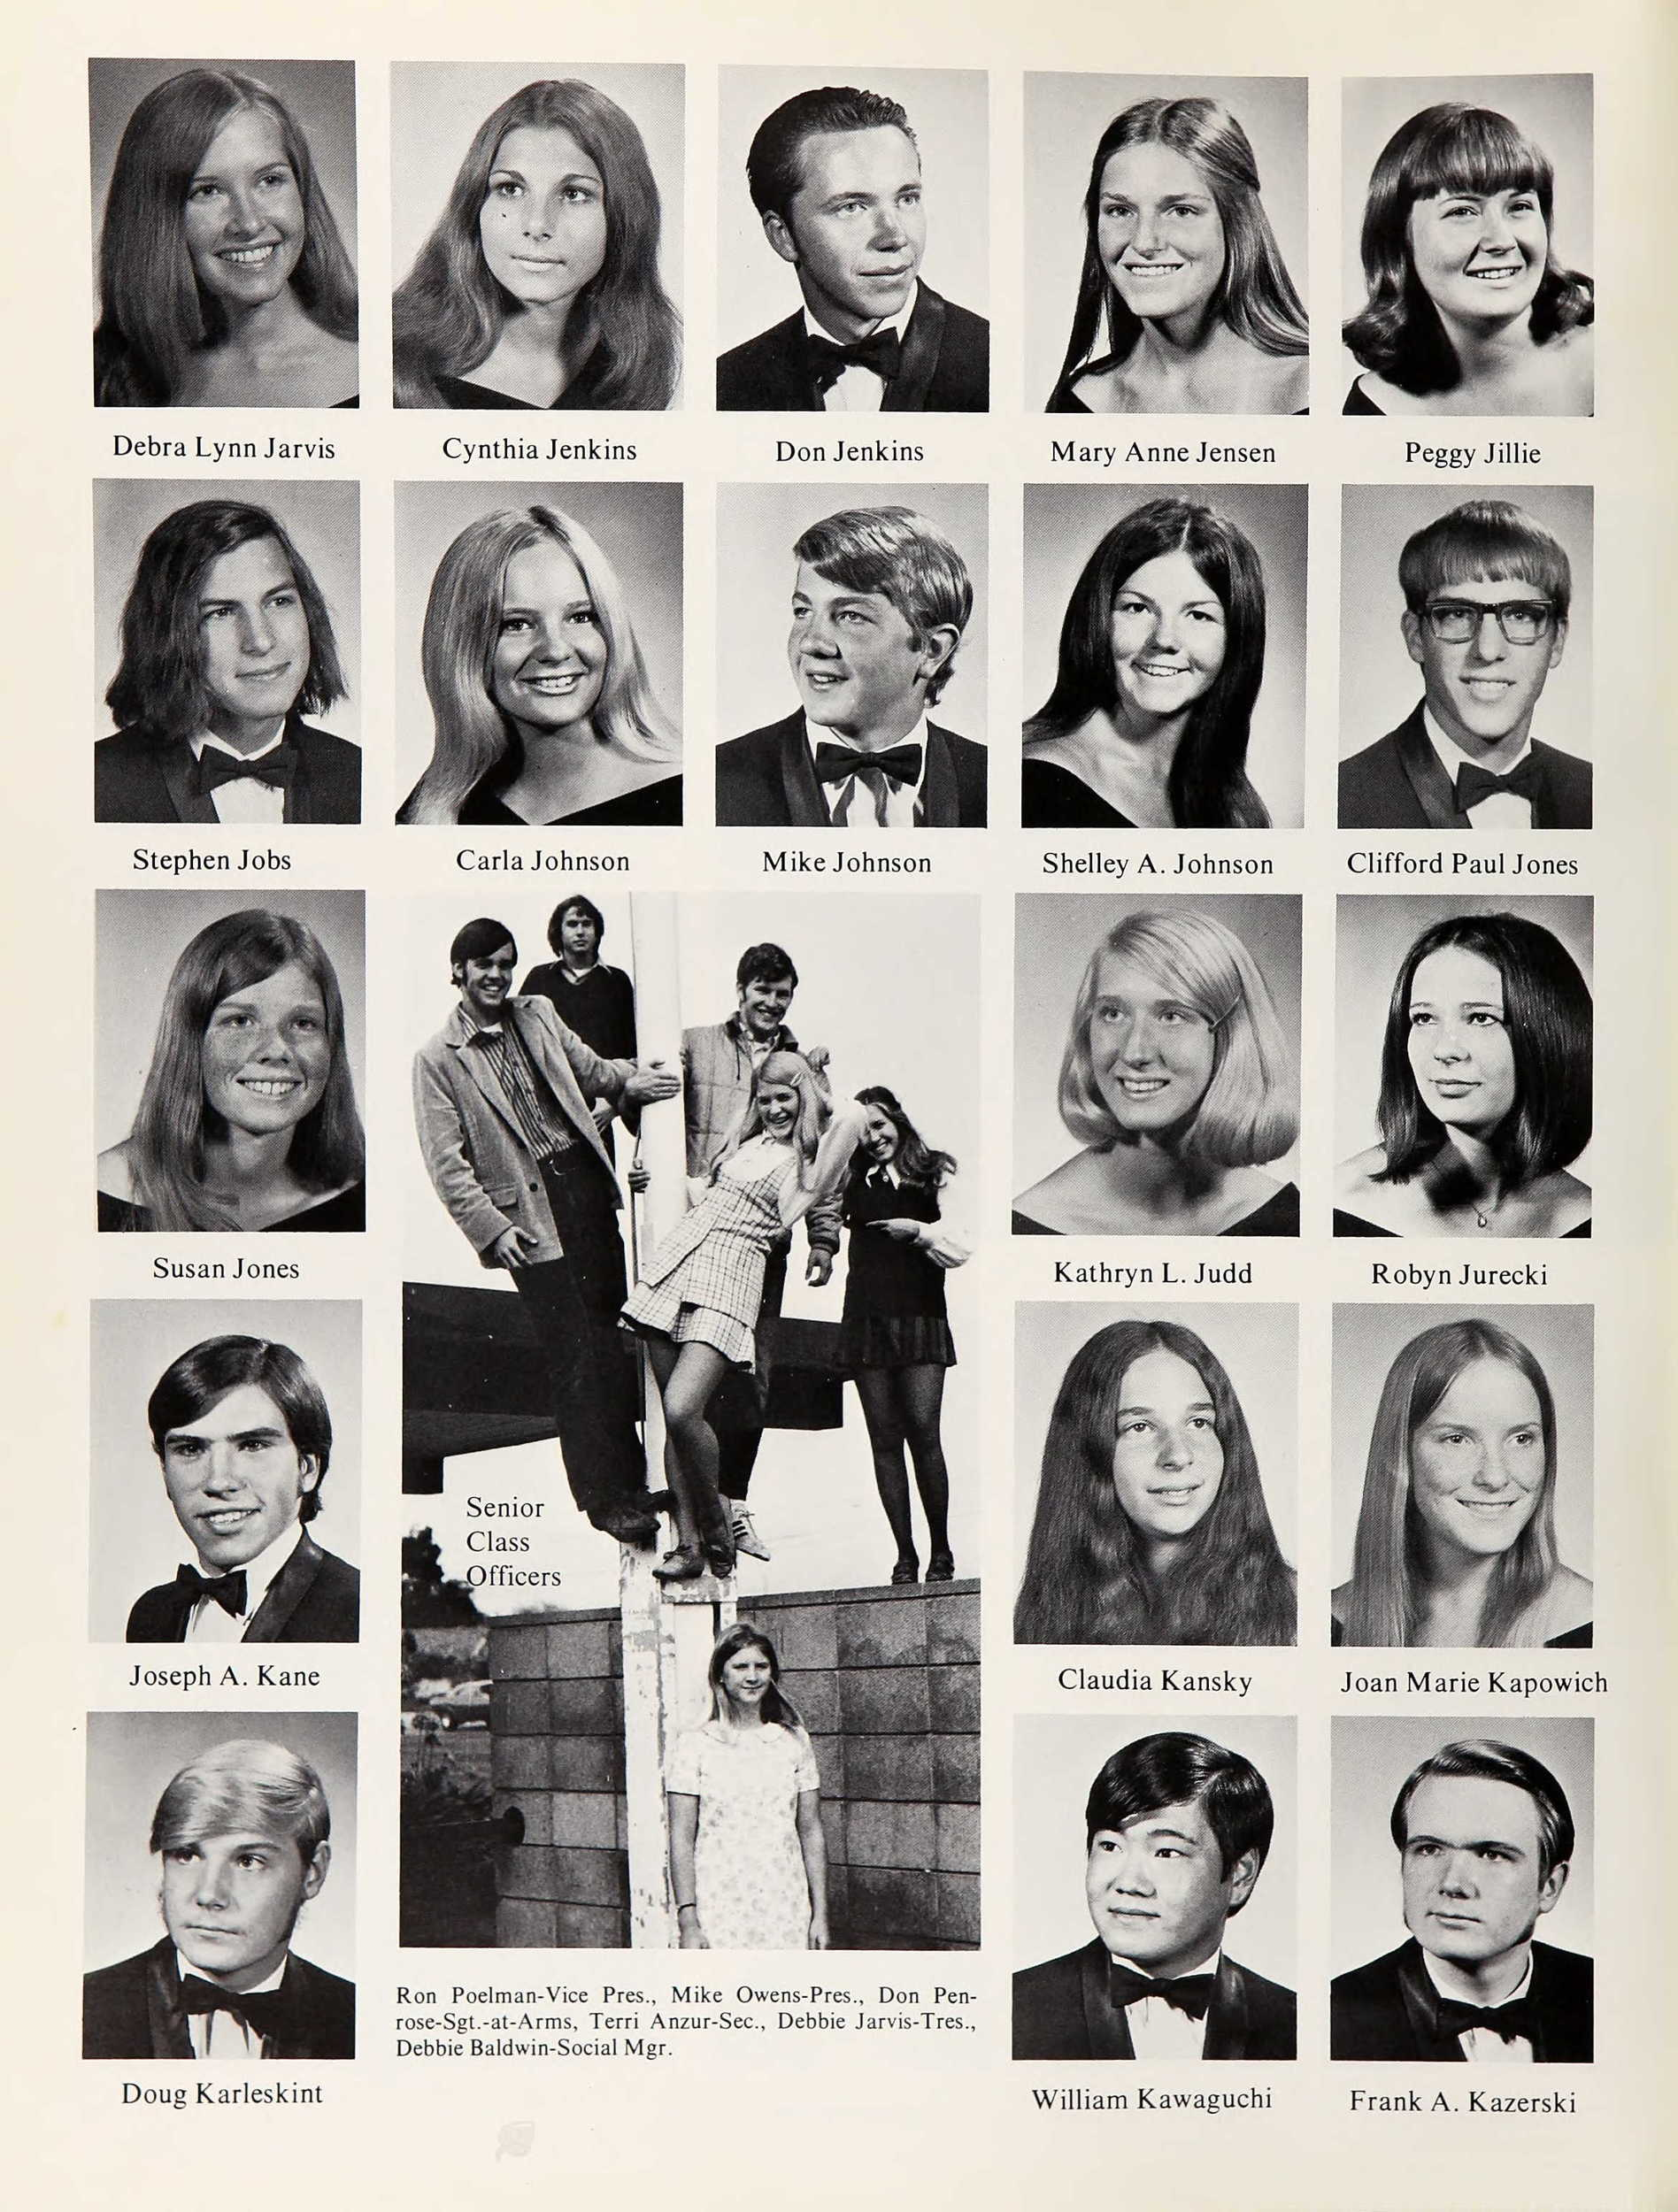 CEO yearbook photos: Look back at Warren Buffett, Steve Jobs and more when they were in high school